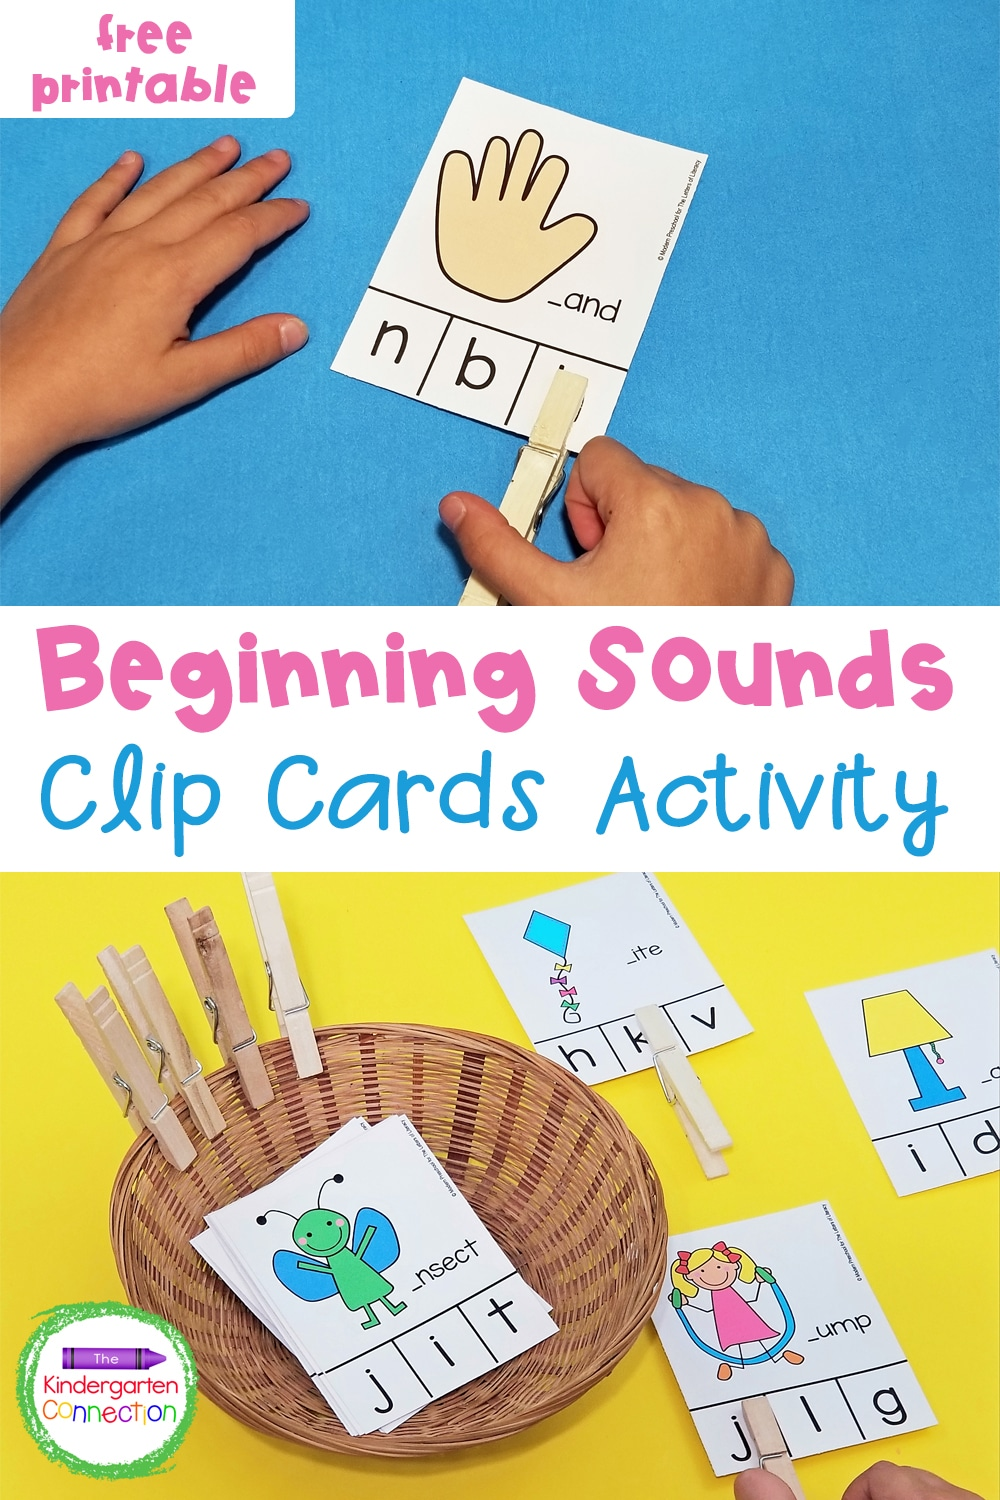 These free Beginning Sounds Clip Cards for Pre-K & Kindergarten will help practice letter recognition and sounds in a fun and engaging way!